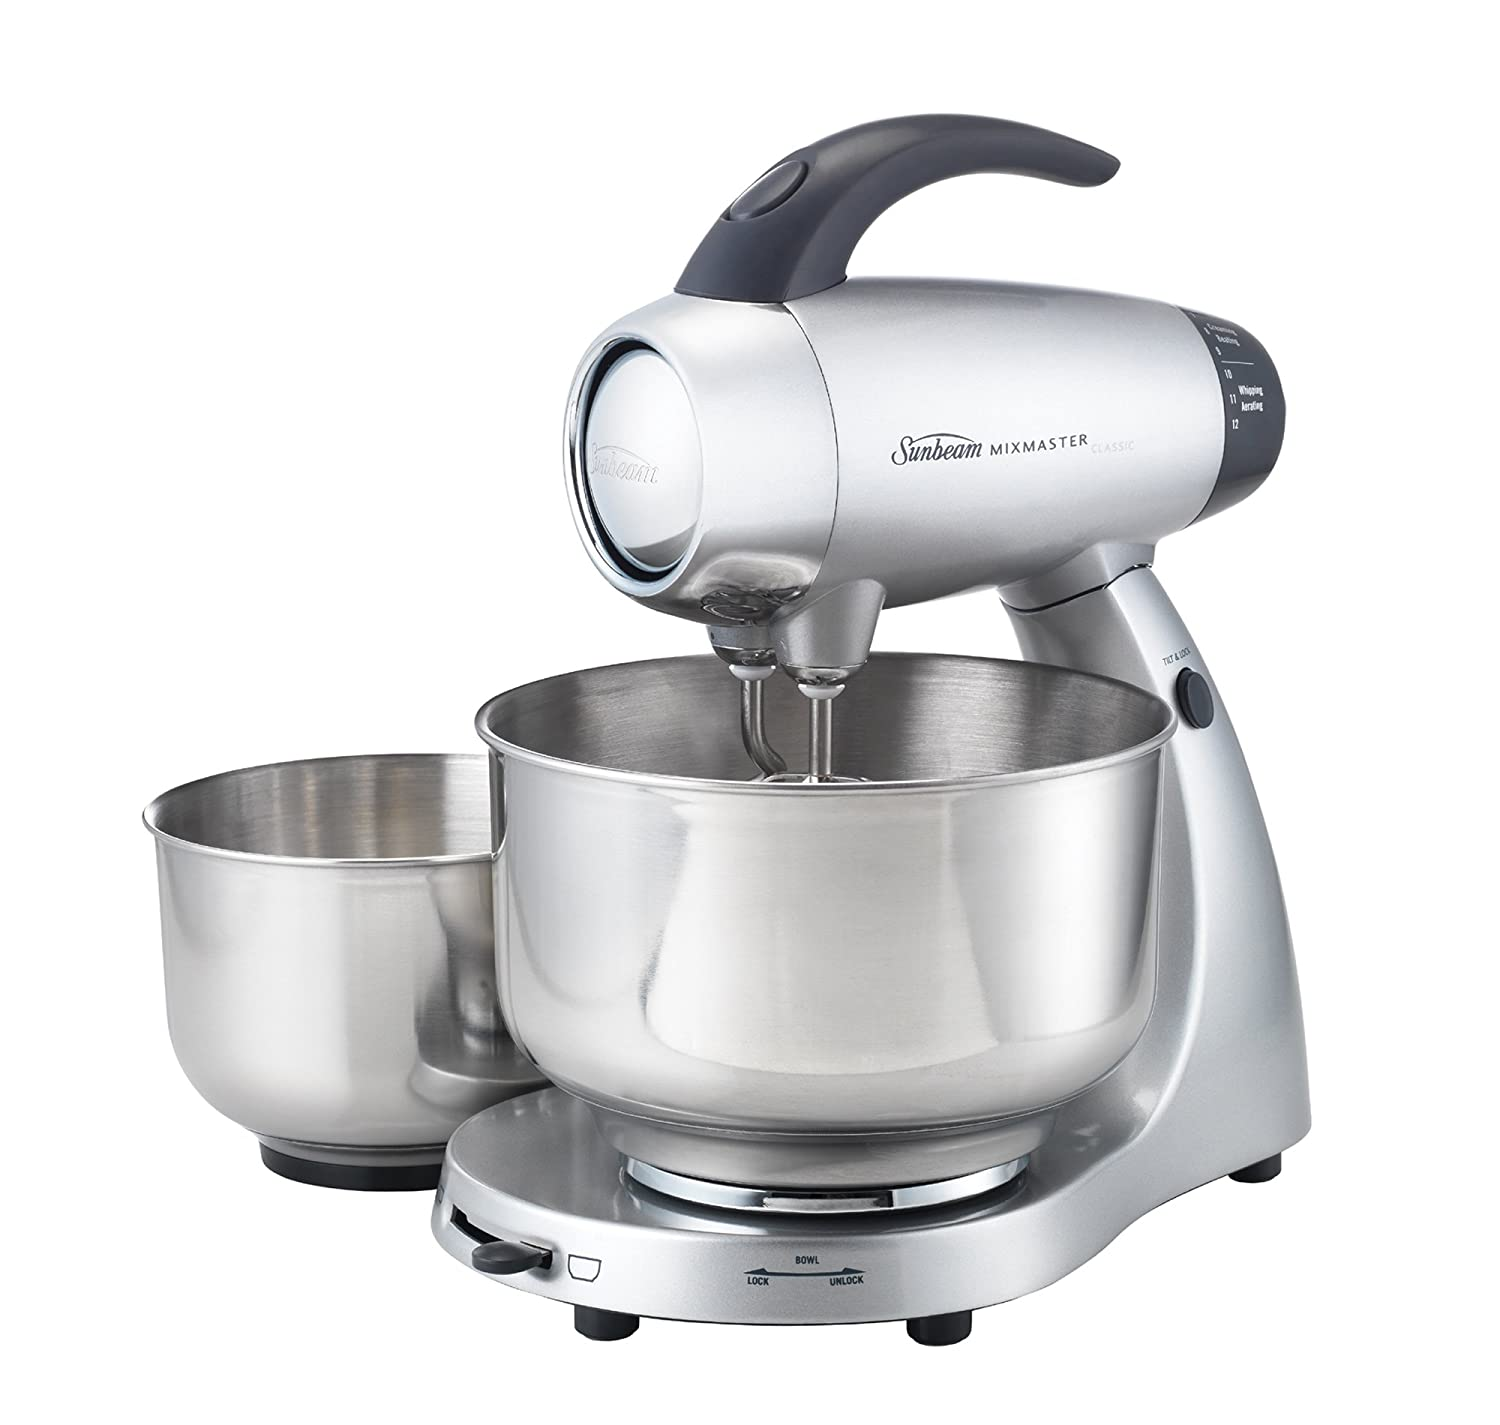 sunbeam mixmaster classic review